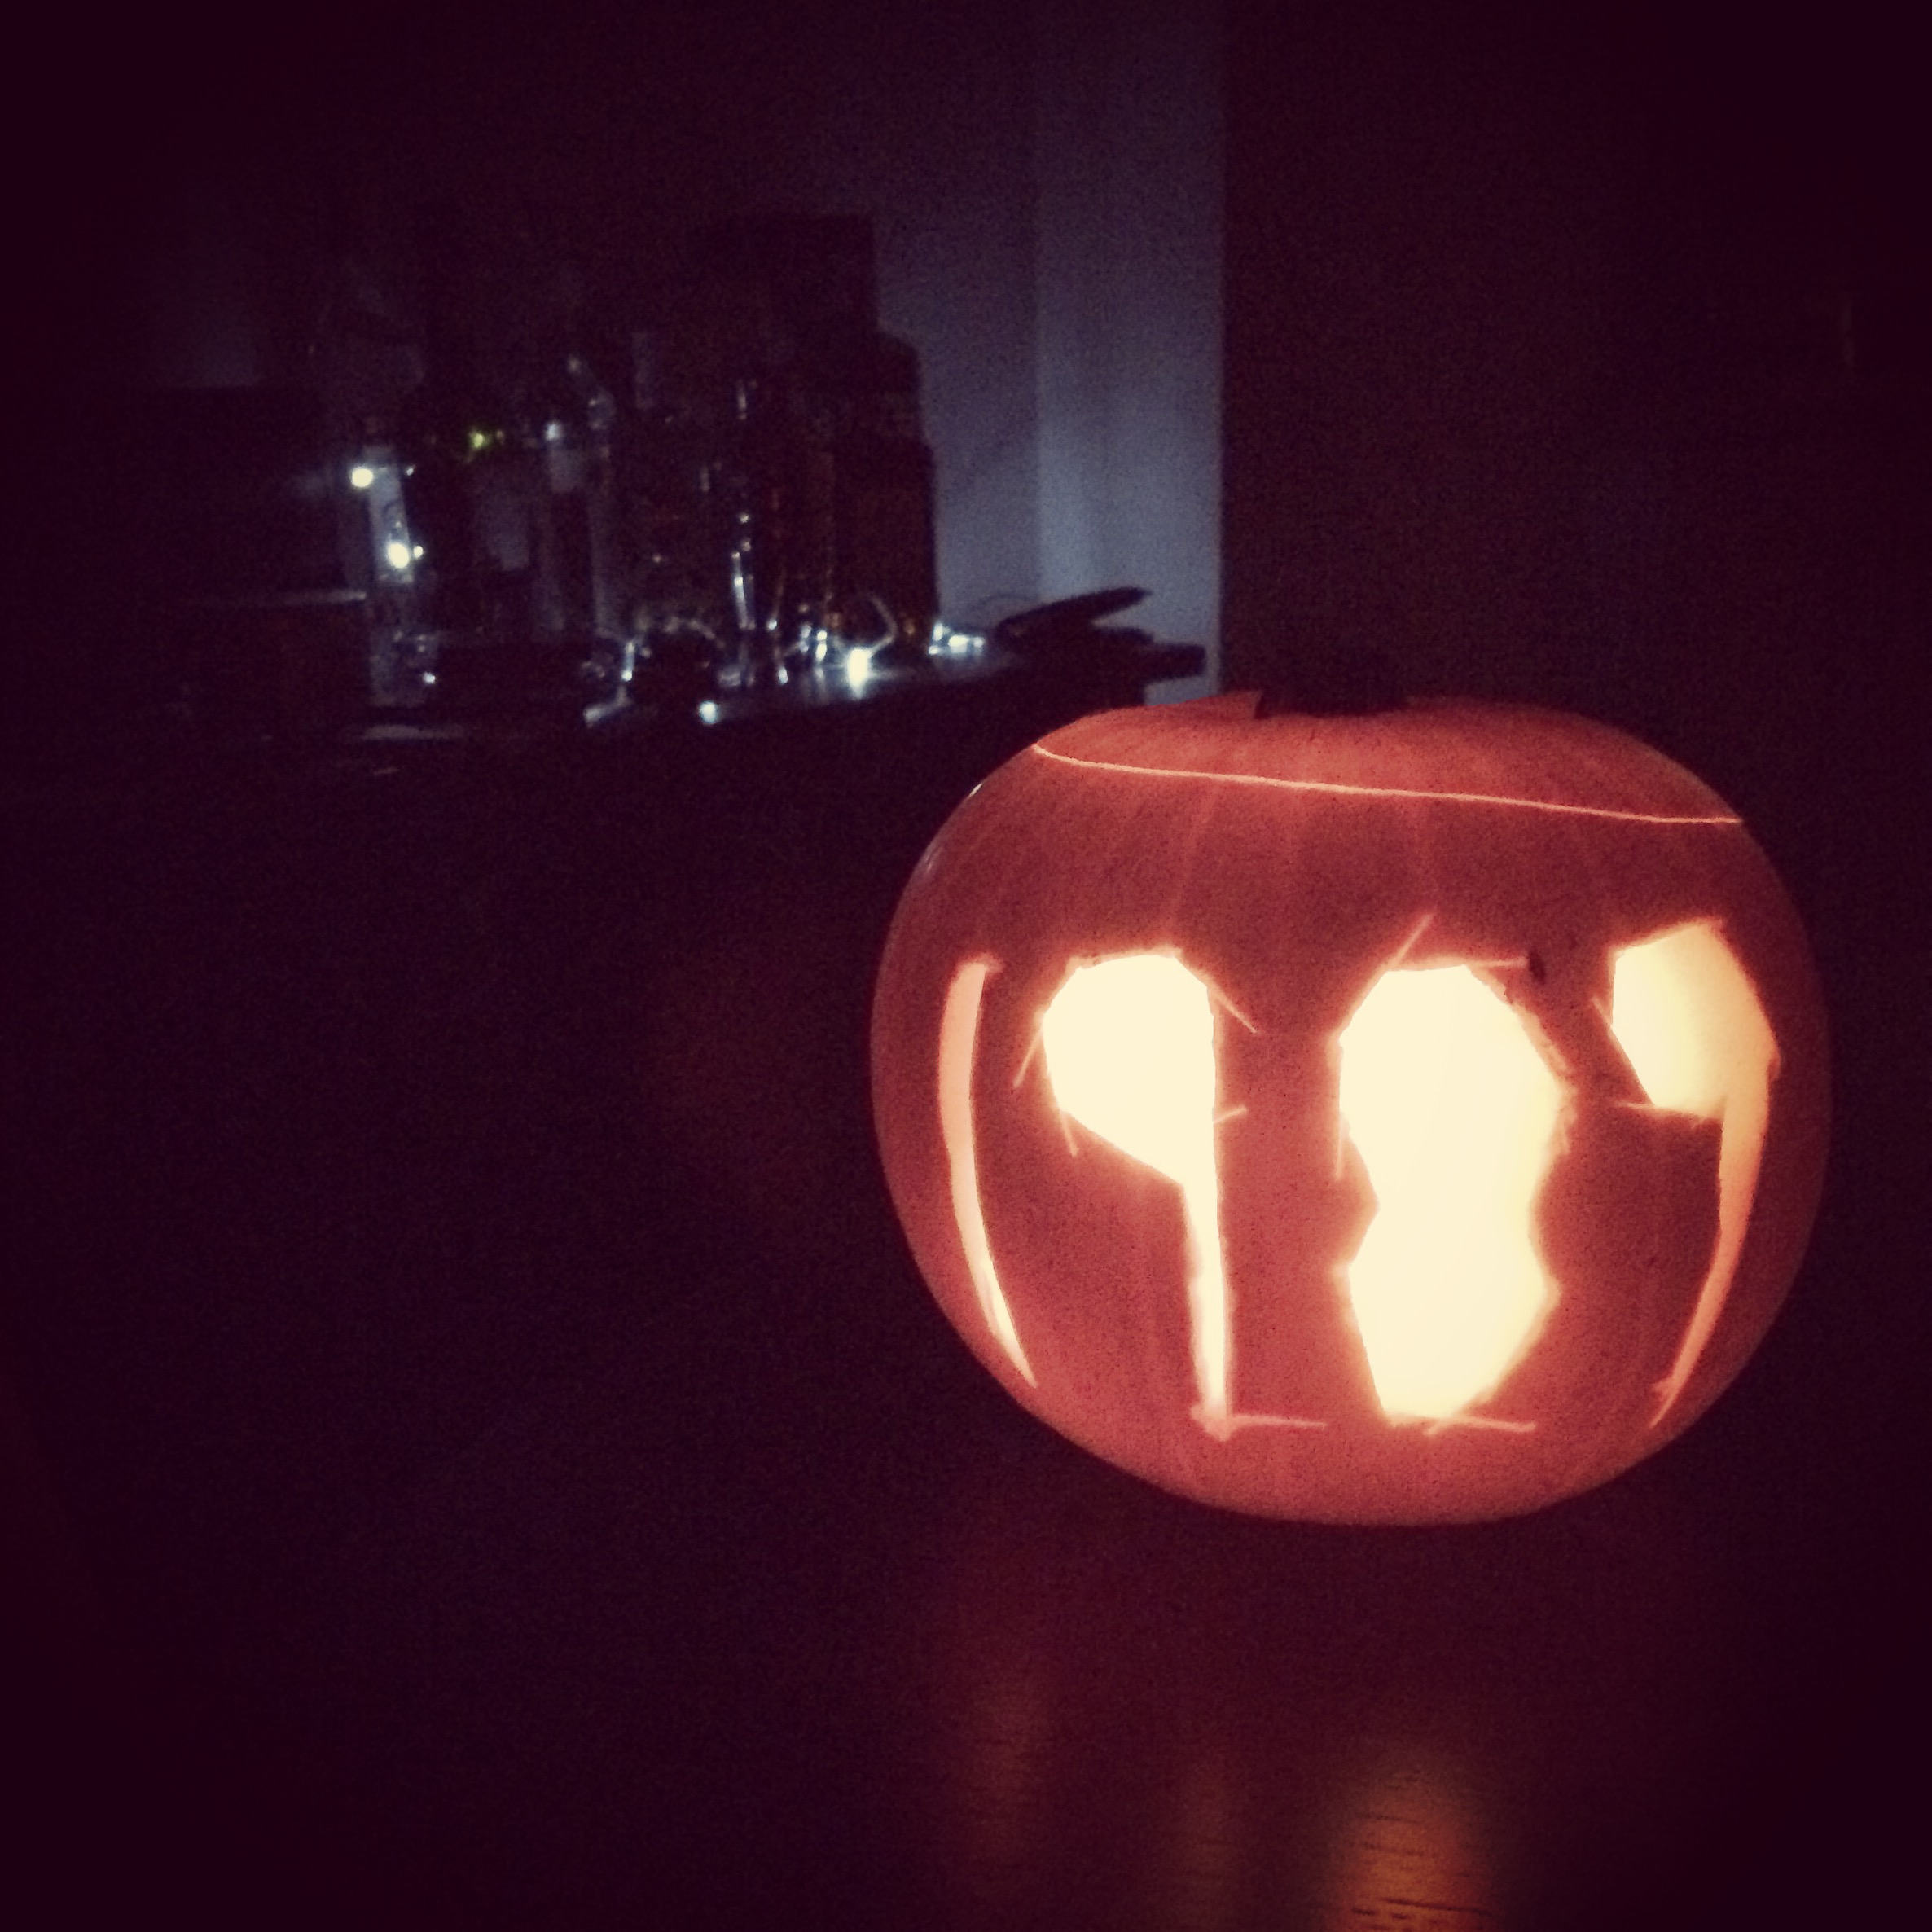 Yes it's a Taylor Swift 1989 themed pumpkin, what of it